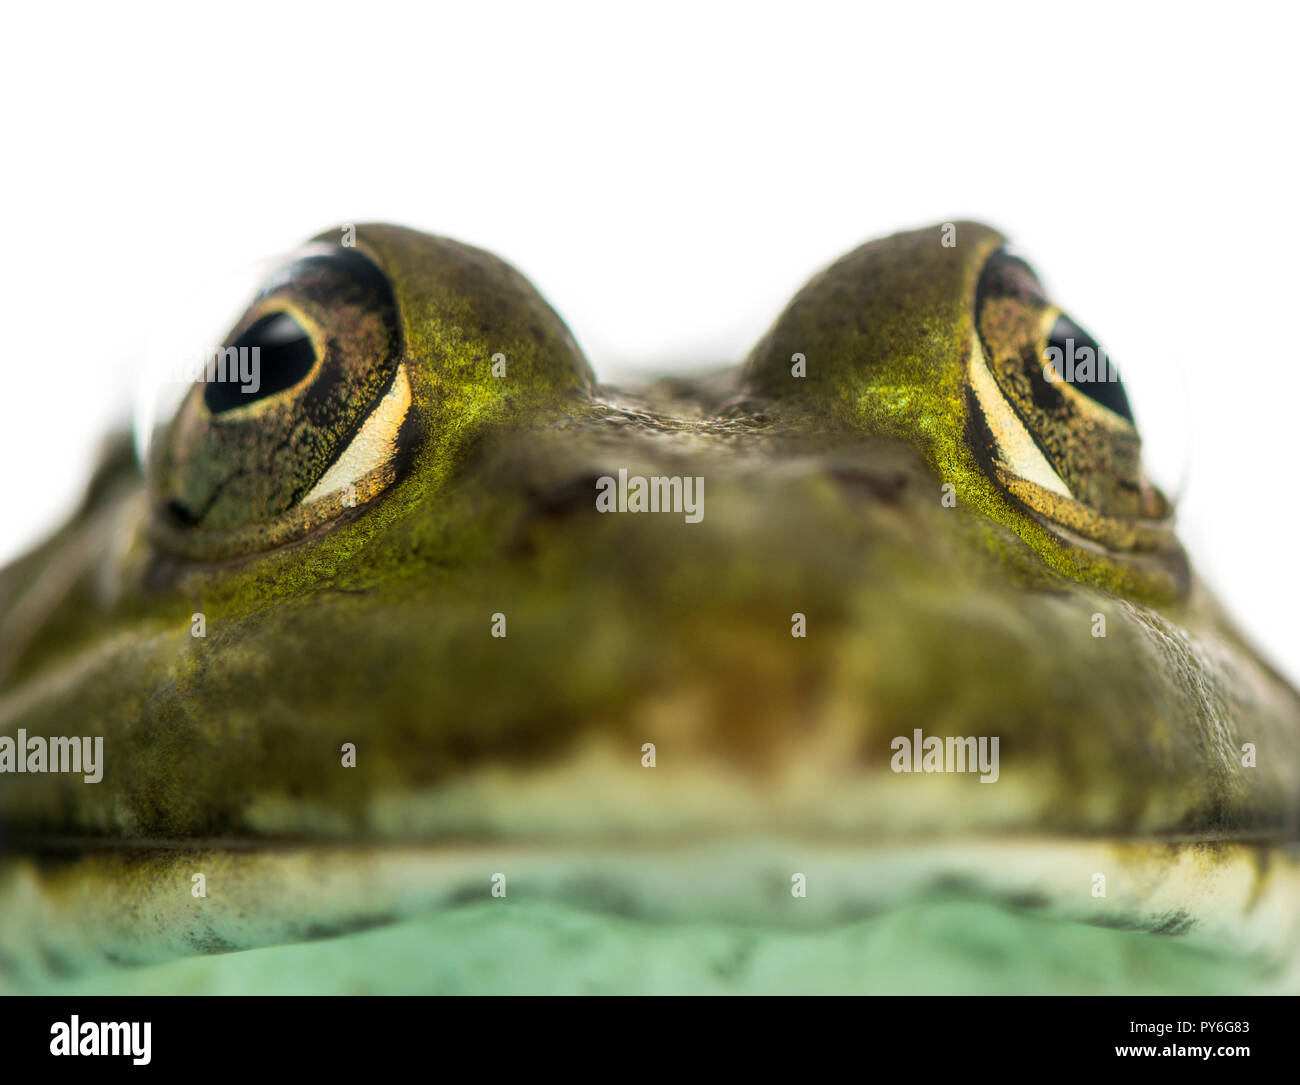 Close-up of an Edible Frog facing, Pelophylax kl. esculentus, isolated on white - Stock Image